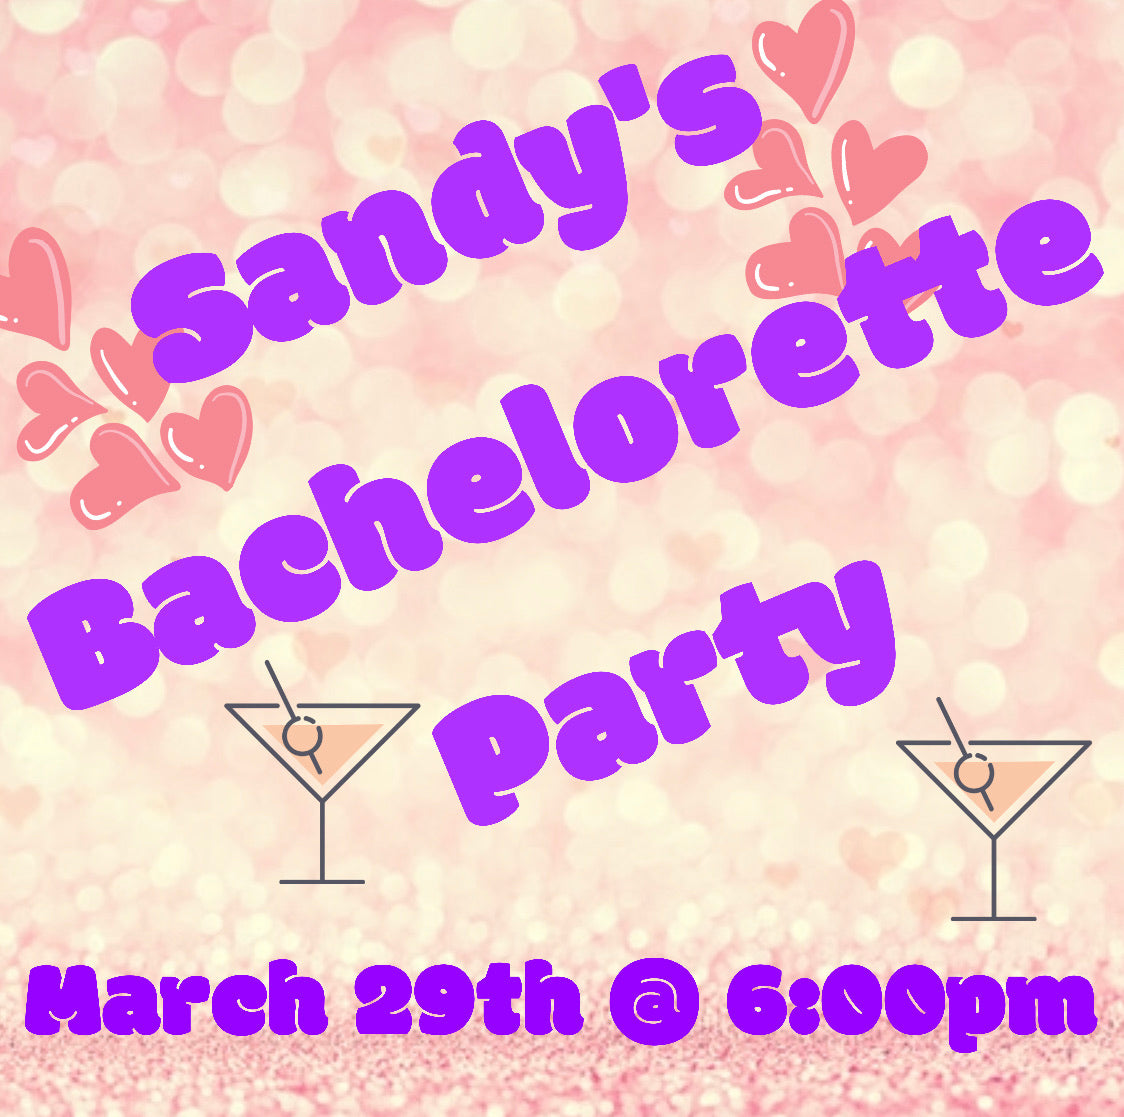 03/29/2020 @ (6:00pm) Sandy's Bachelorette Party! $25 Squares Pick Your Design Squares (Locust Grove)